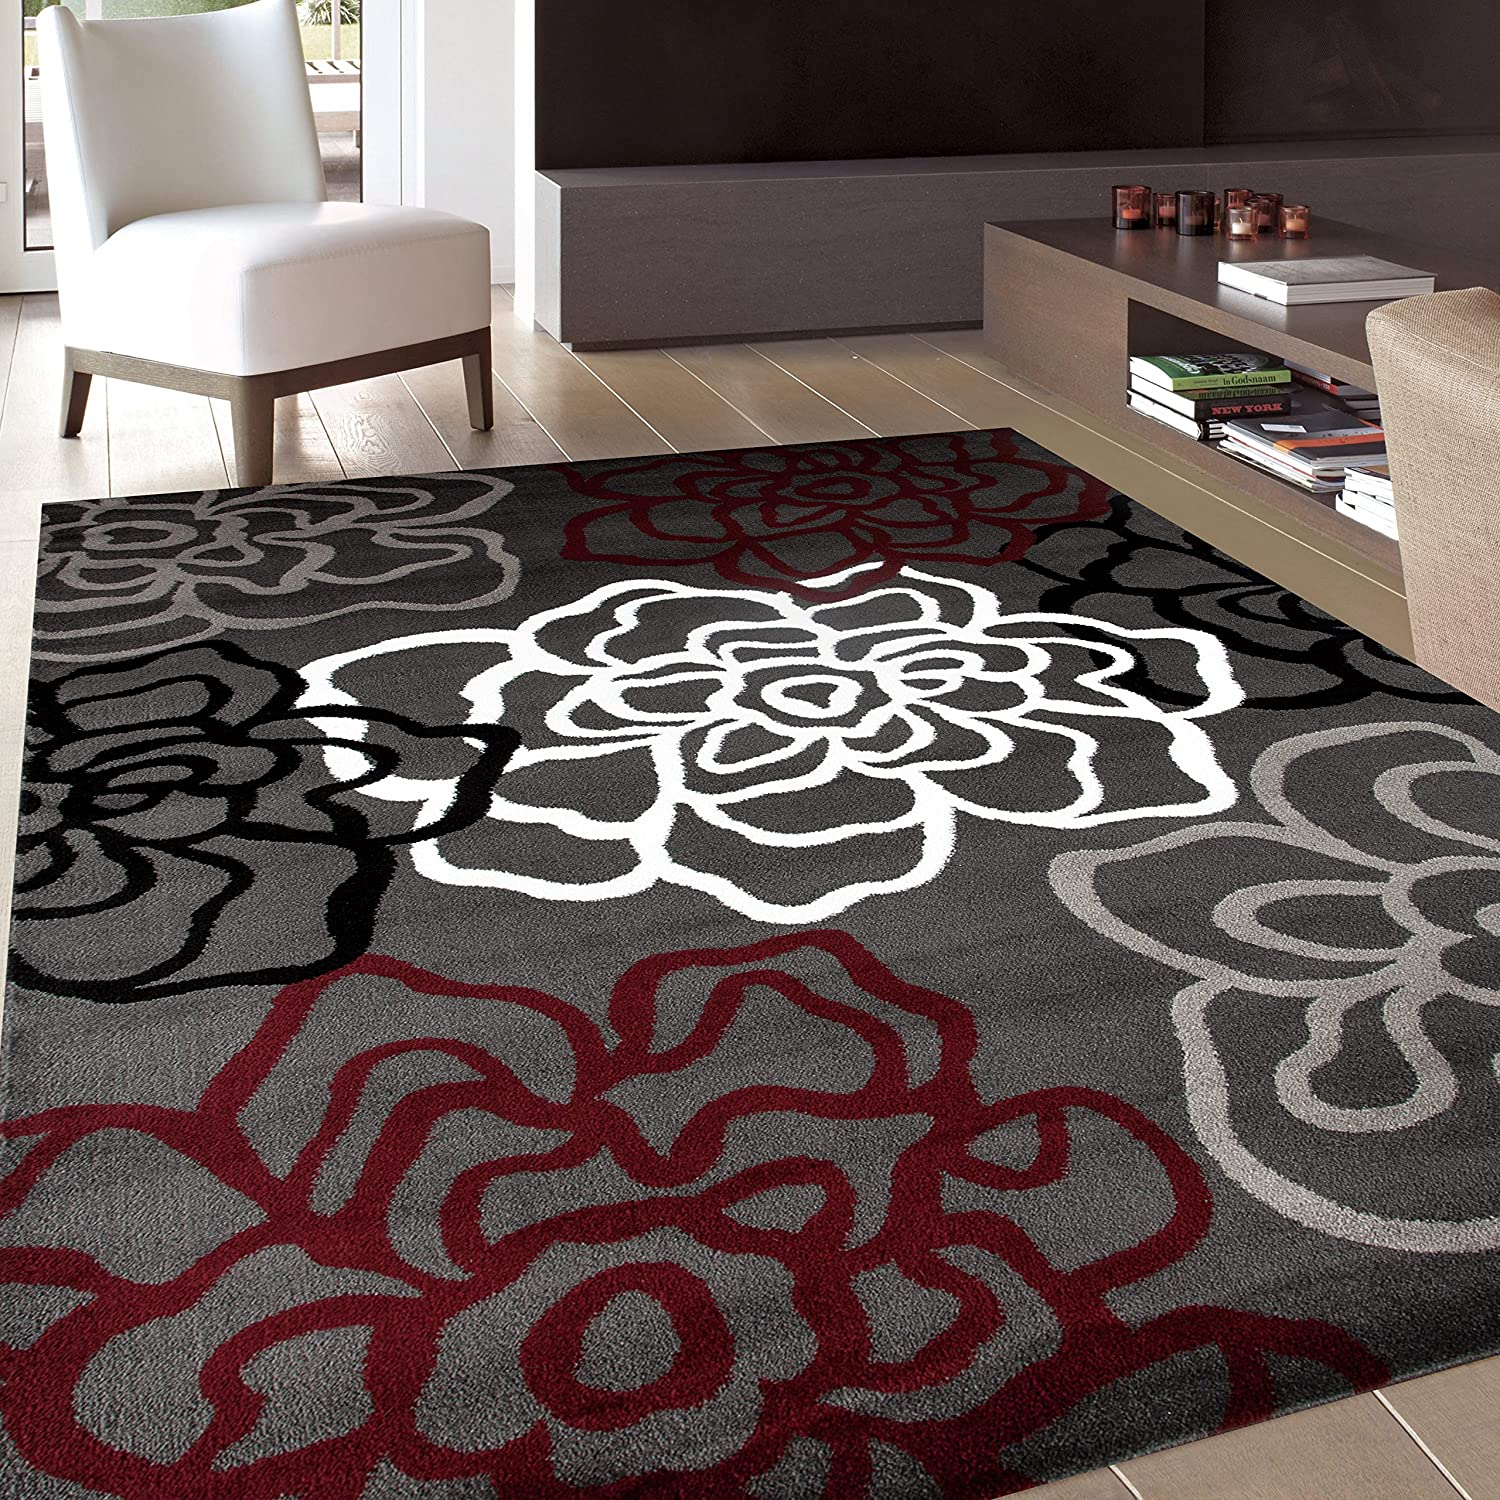 shag plush rug home lifetime cozy americapadvisers rugs super solid area com interior walmart thick gray x